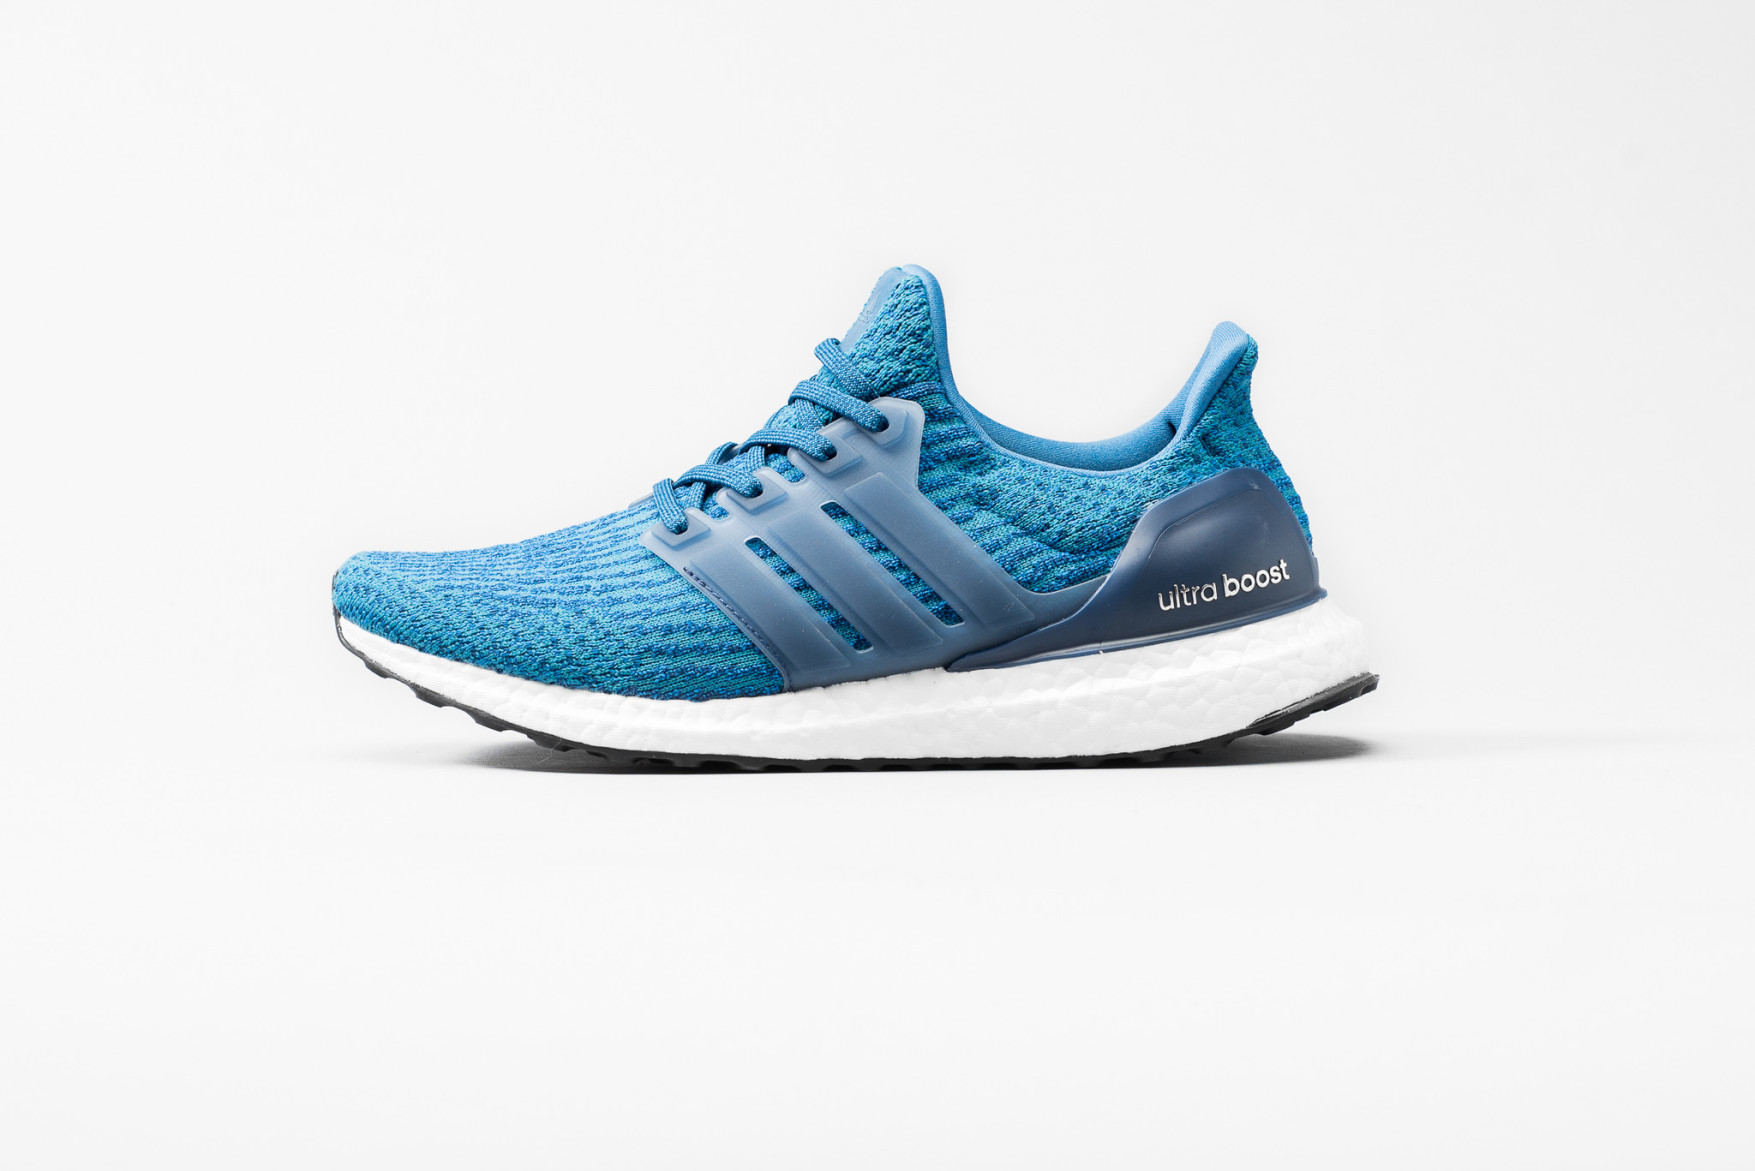 adidas UltraBOOST Royal Blue/White - 1835383